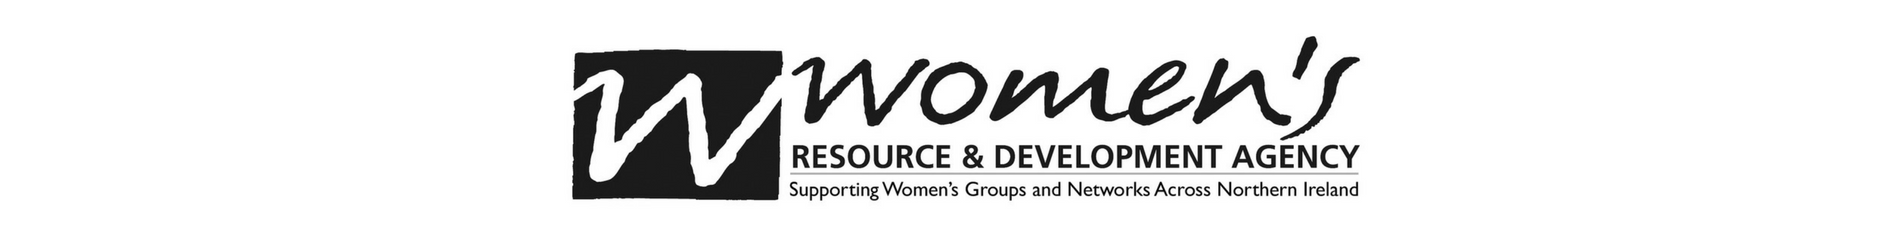 Womens Resource and Development Agency